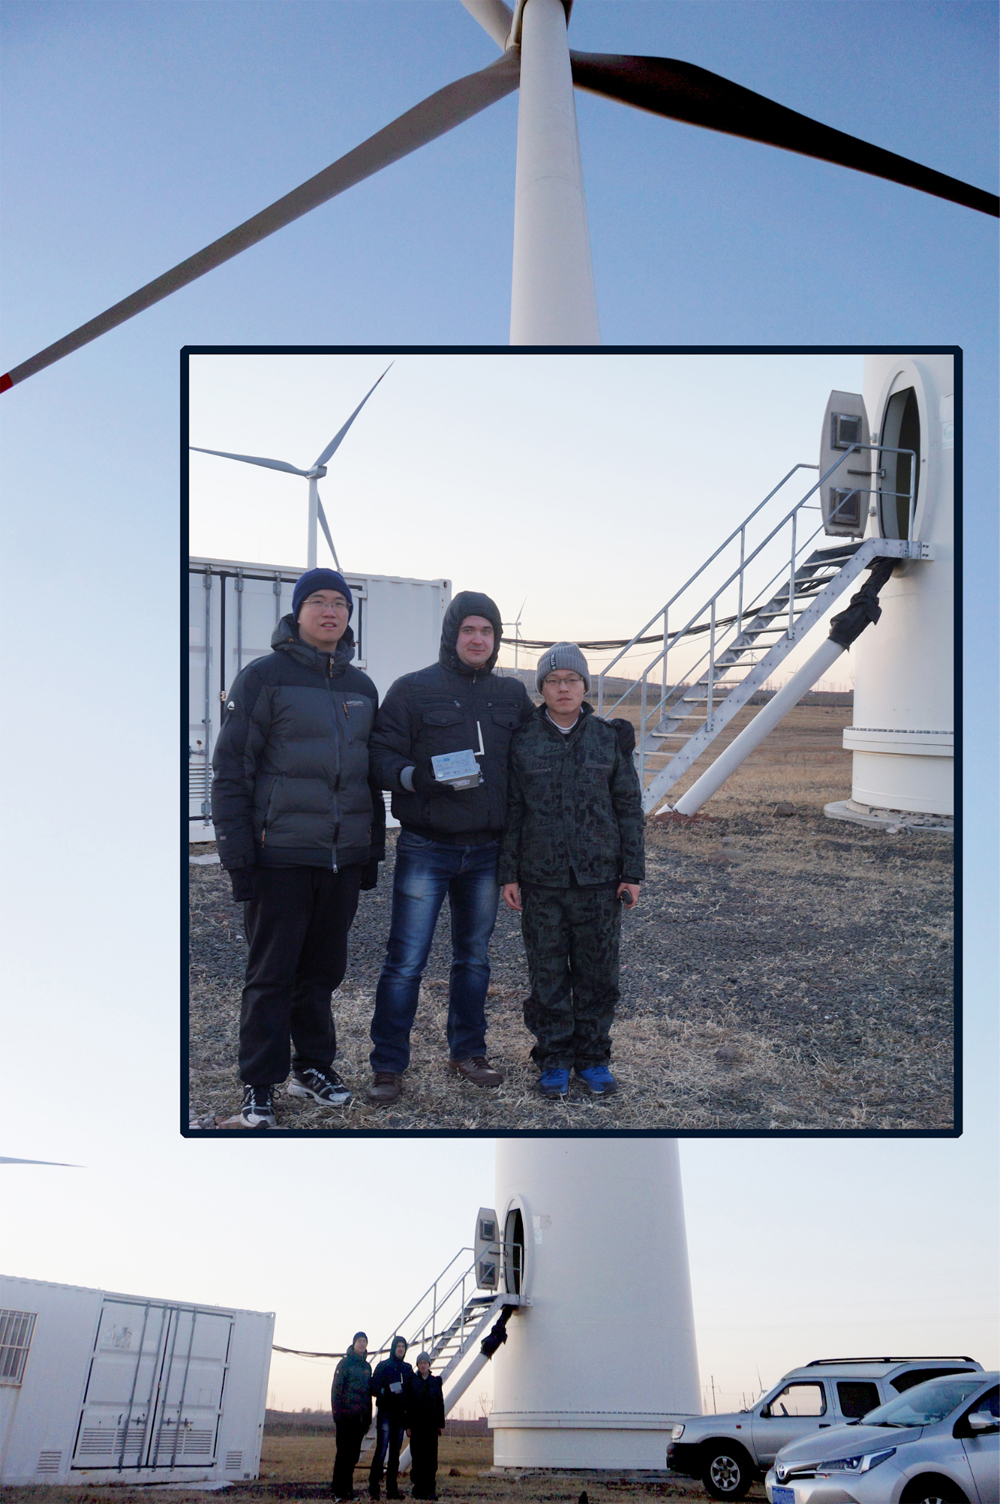 Sergey Vasukevich with Smartbow colleagues near the wind turbine where VibroBox system was tested